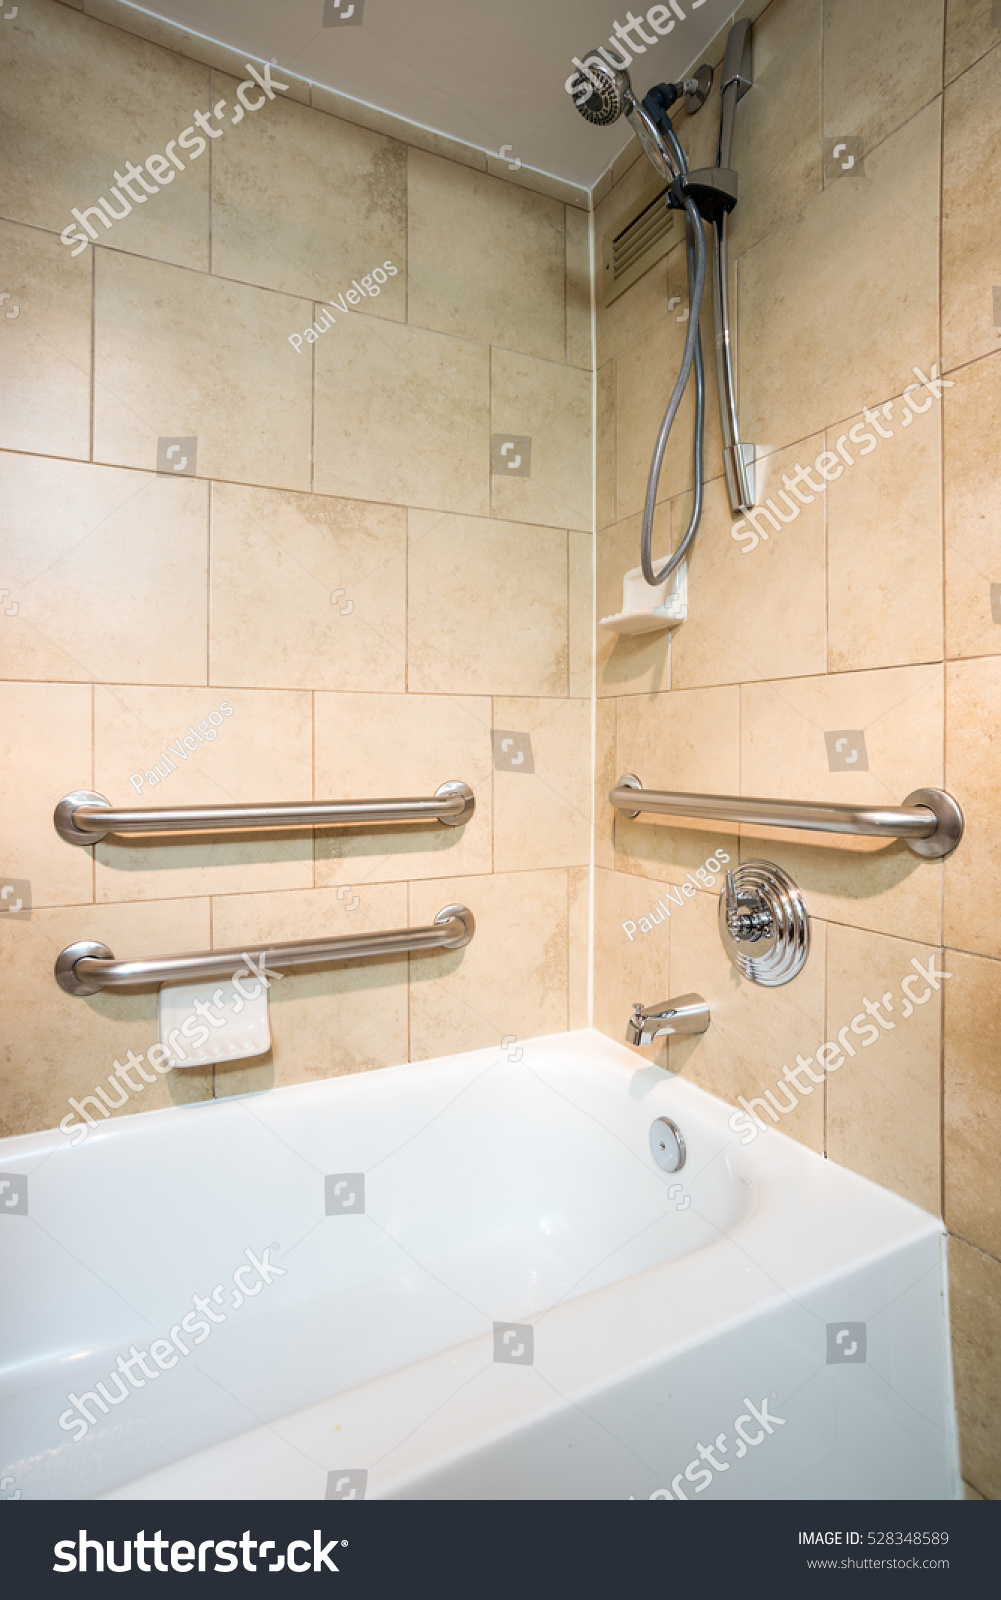 Disabled Access Bathtub in a Hotel Room with Grab Bar Hand Rails ...